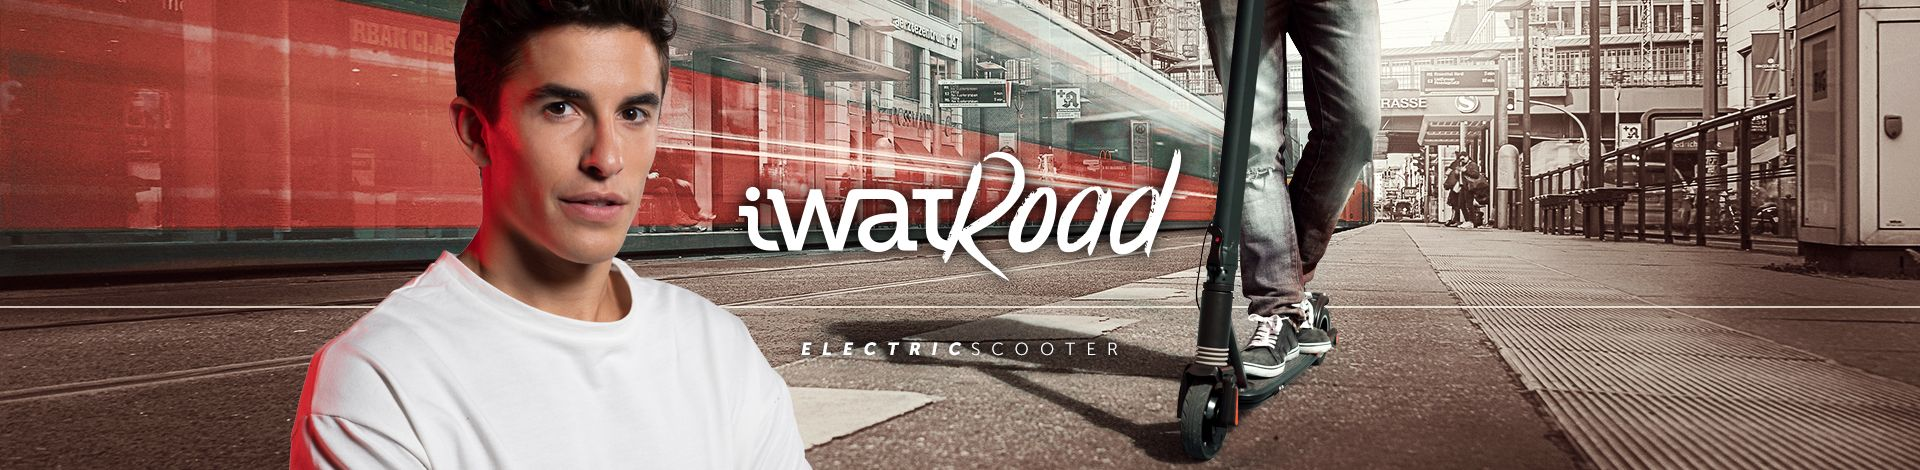 patinete-scooter electrico-iwatroad-r8